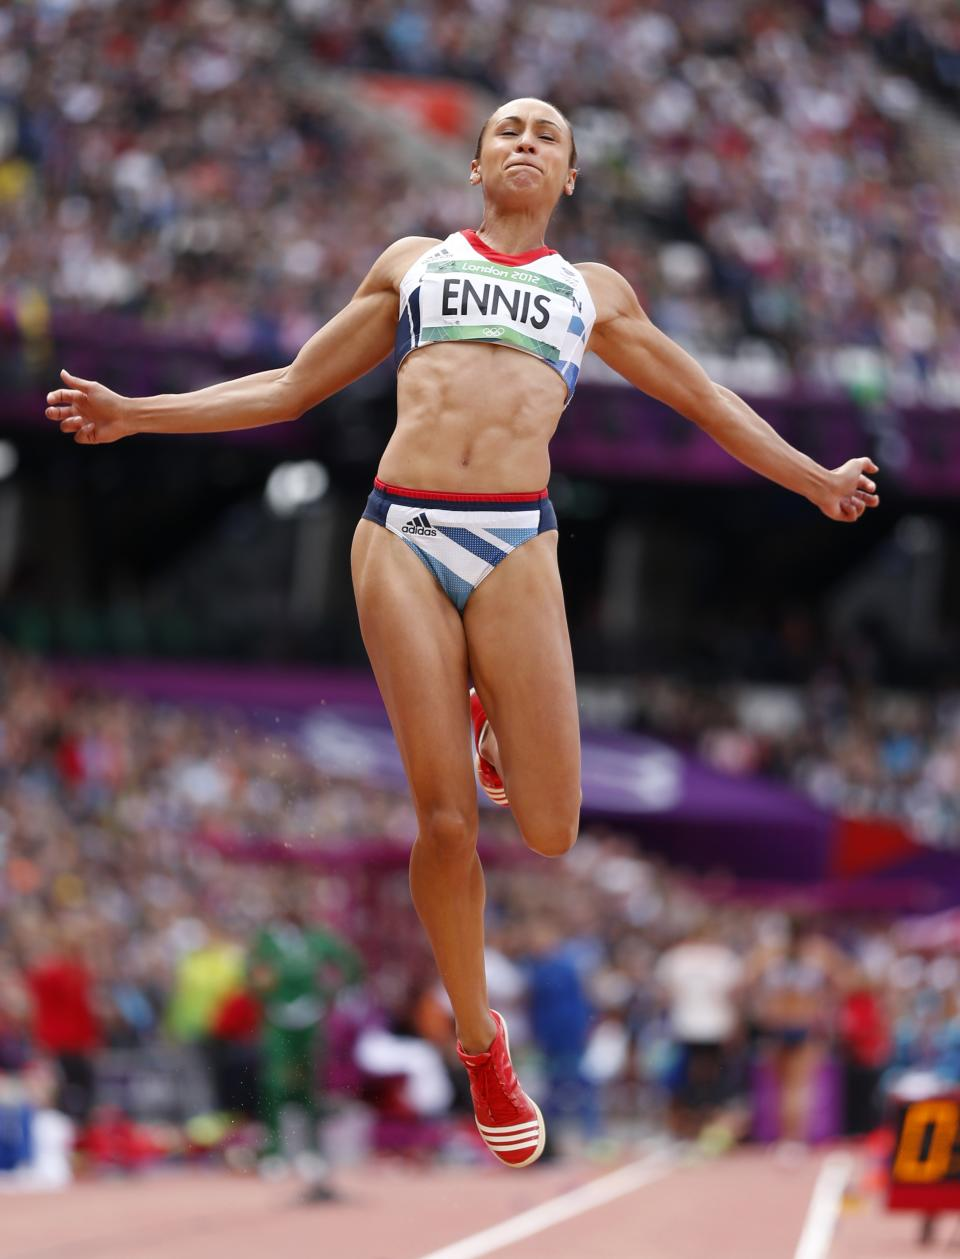 Britain's Jessica Ennis competes in the long jump heptathlon during the athletics in the Olympic Stadium at the 2012 Summer Olympics, London, Saturday, Aug. 4, 2012. (AP Photo/Matt Dunham)